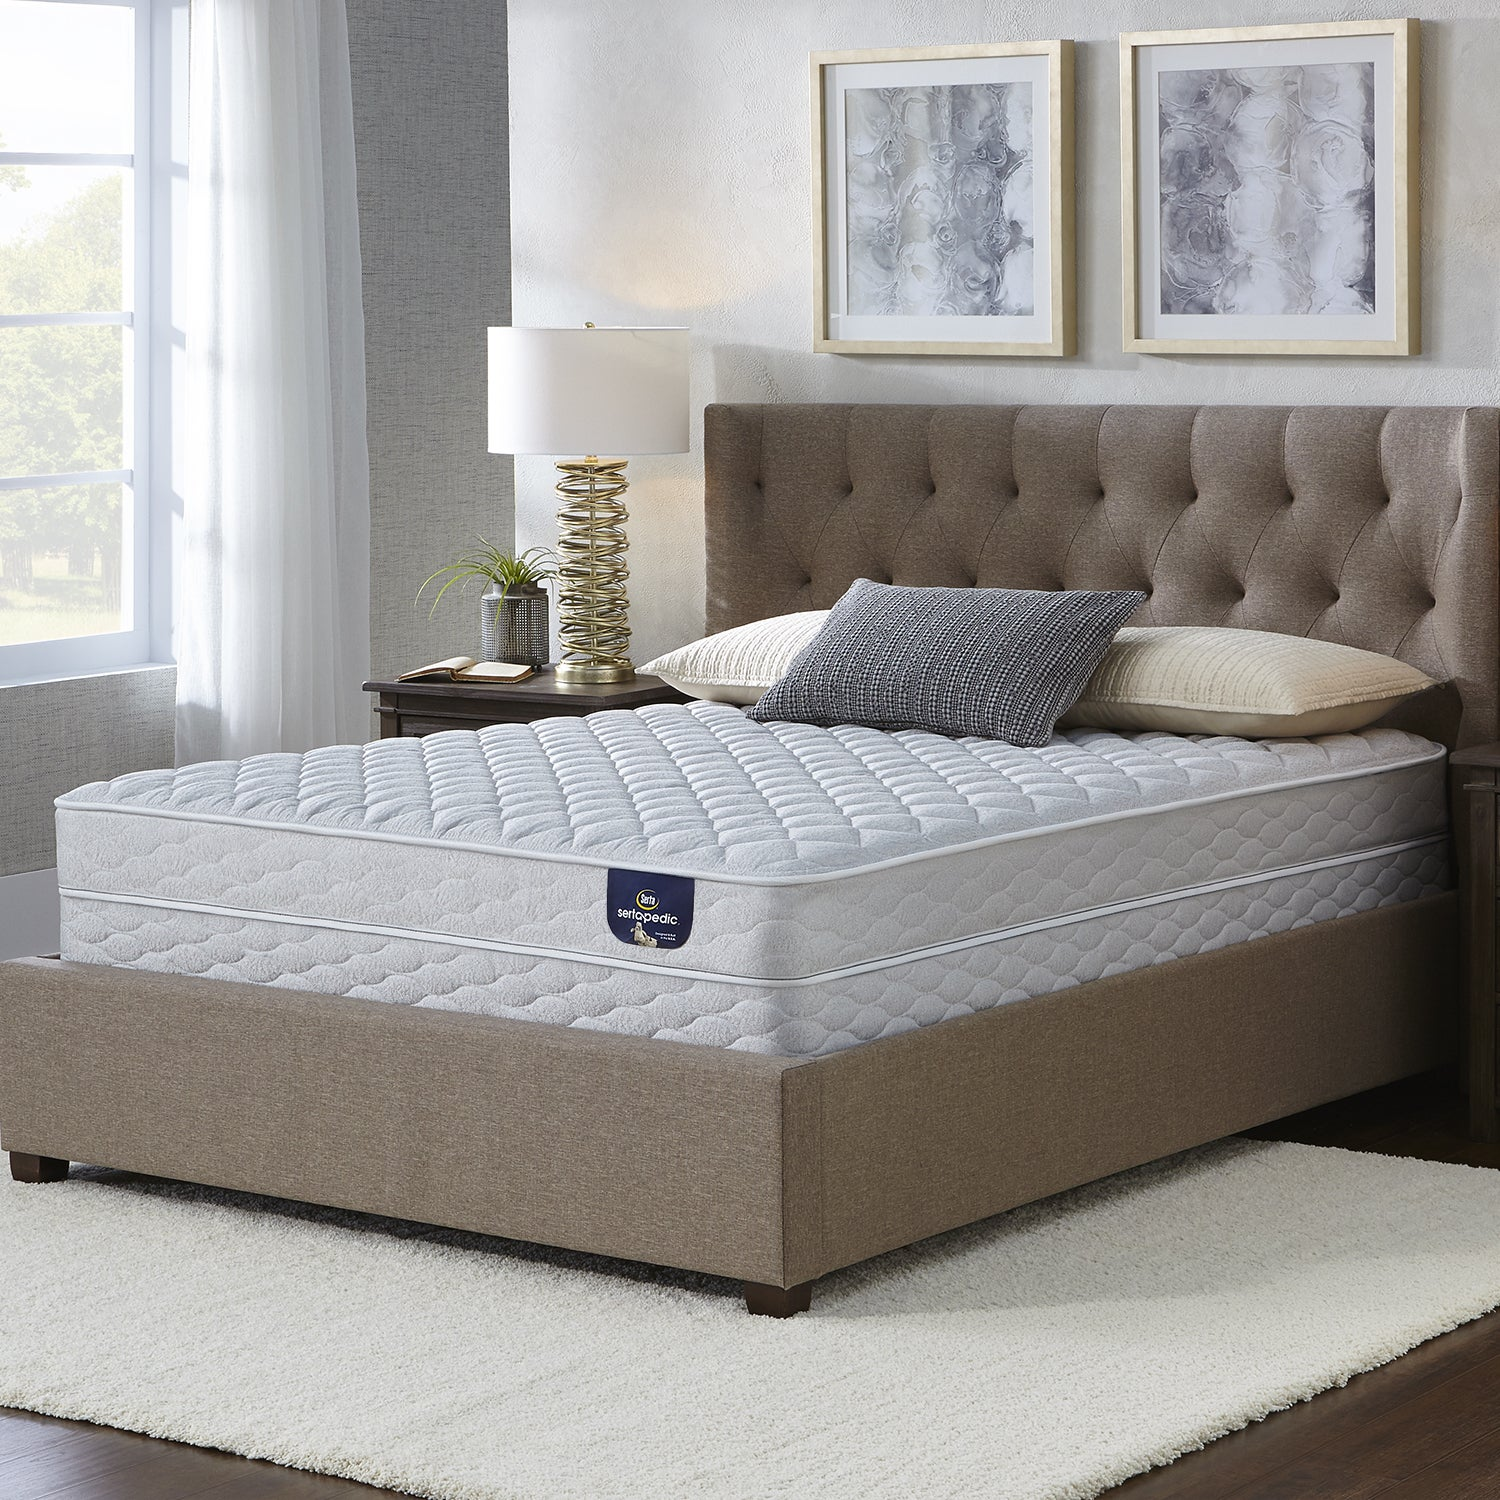 Serta Chrome Firm Split Queen-size Mattress Set (Queen Ma...